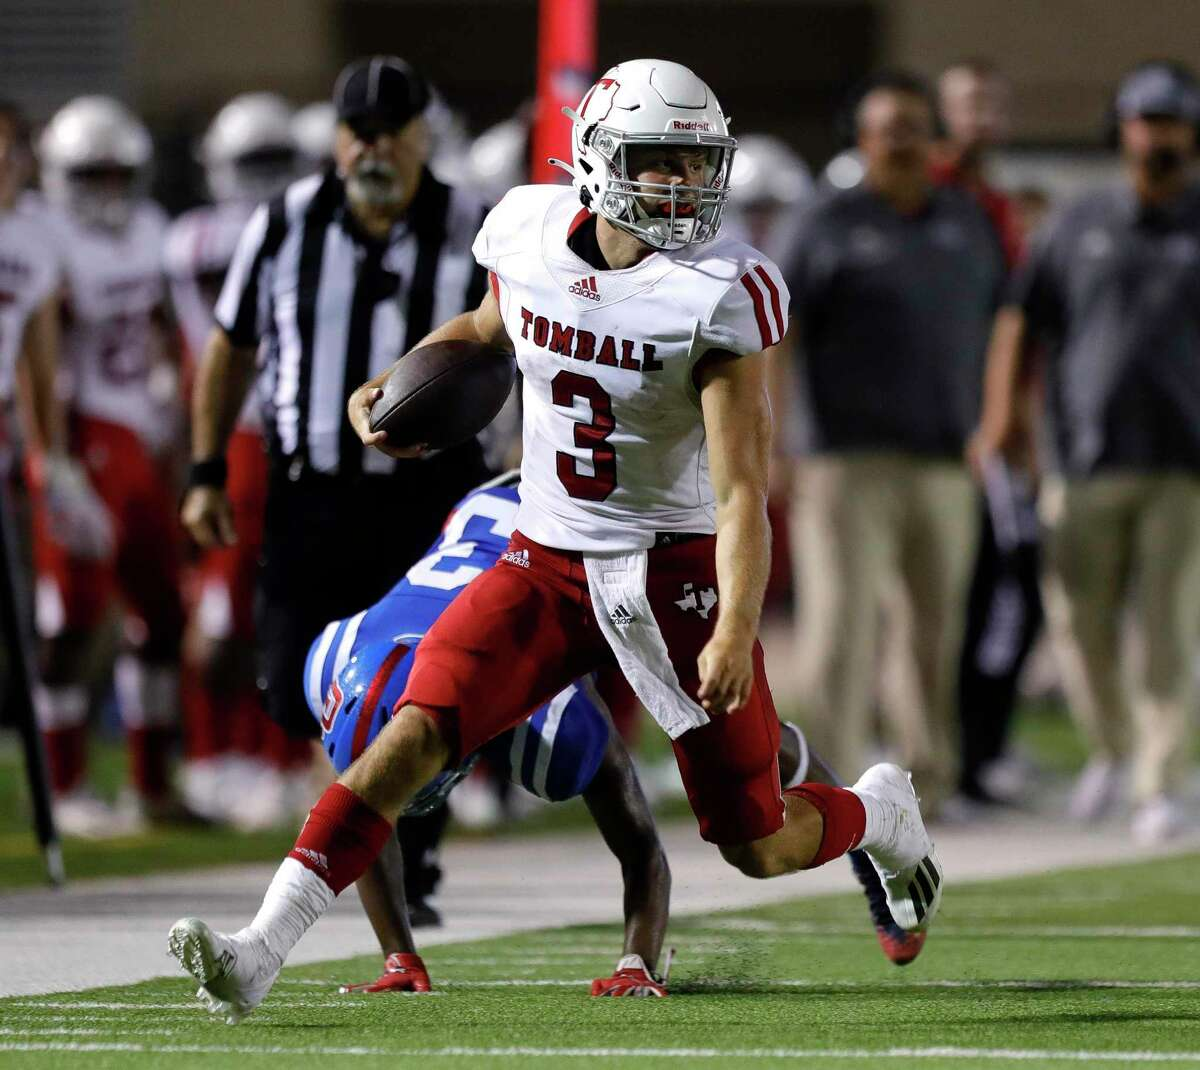 Tomball quarterback Cale Hellums (3) picks up a first down during the third quarter of a non-district high school football game at Woodforest Bank Stadium, Thursday, Sept. 16, 2021, in Shenandoah.